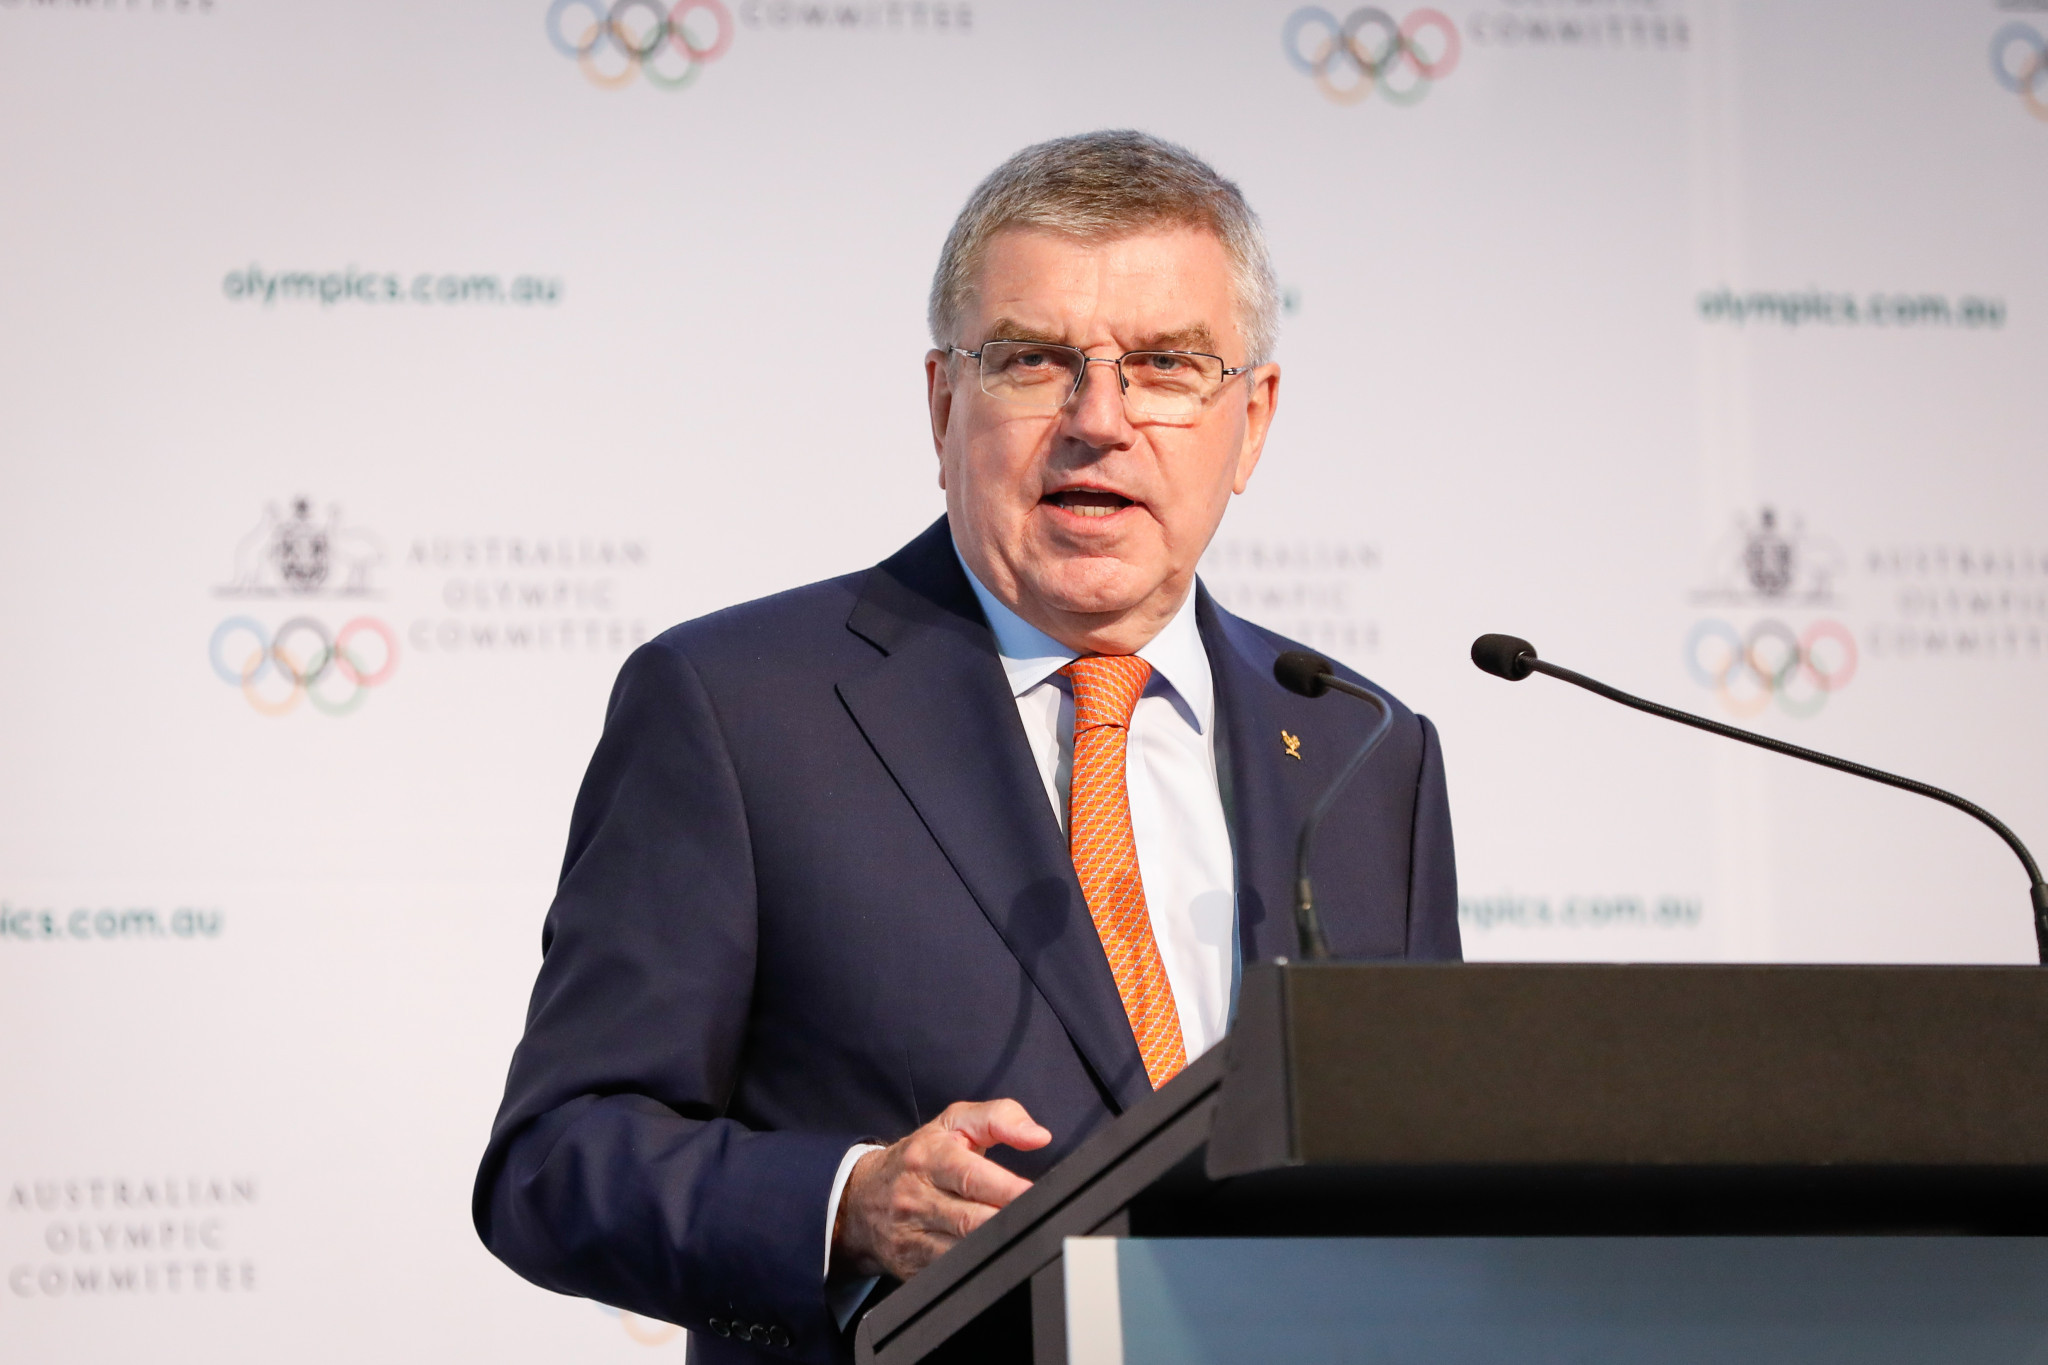 Thomas Bach has congratulated the WKF on its 50th anniversary ©Getty Images